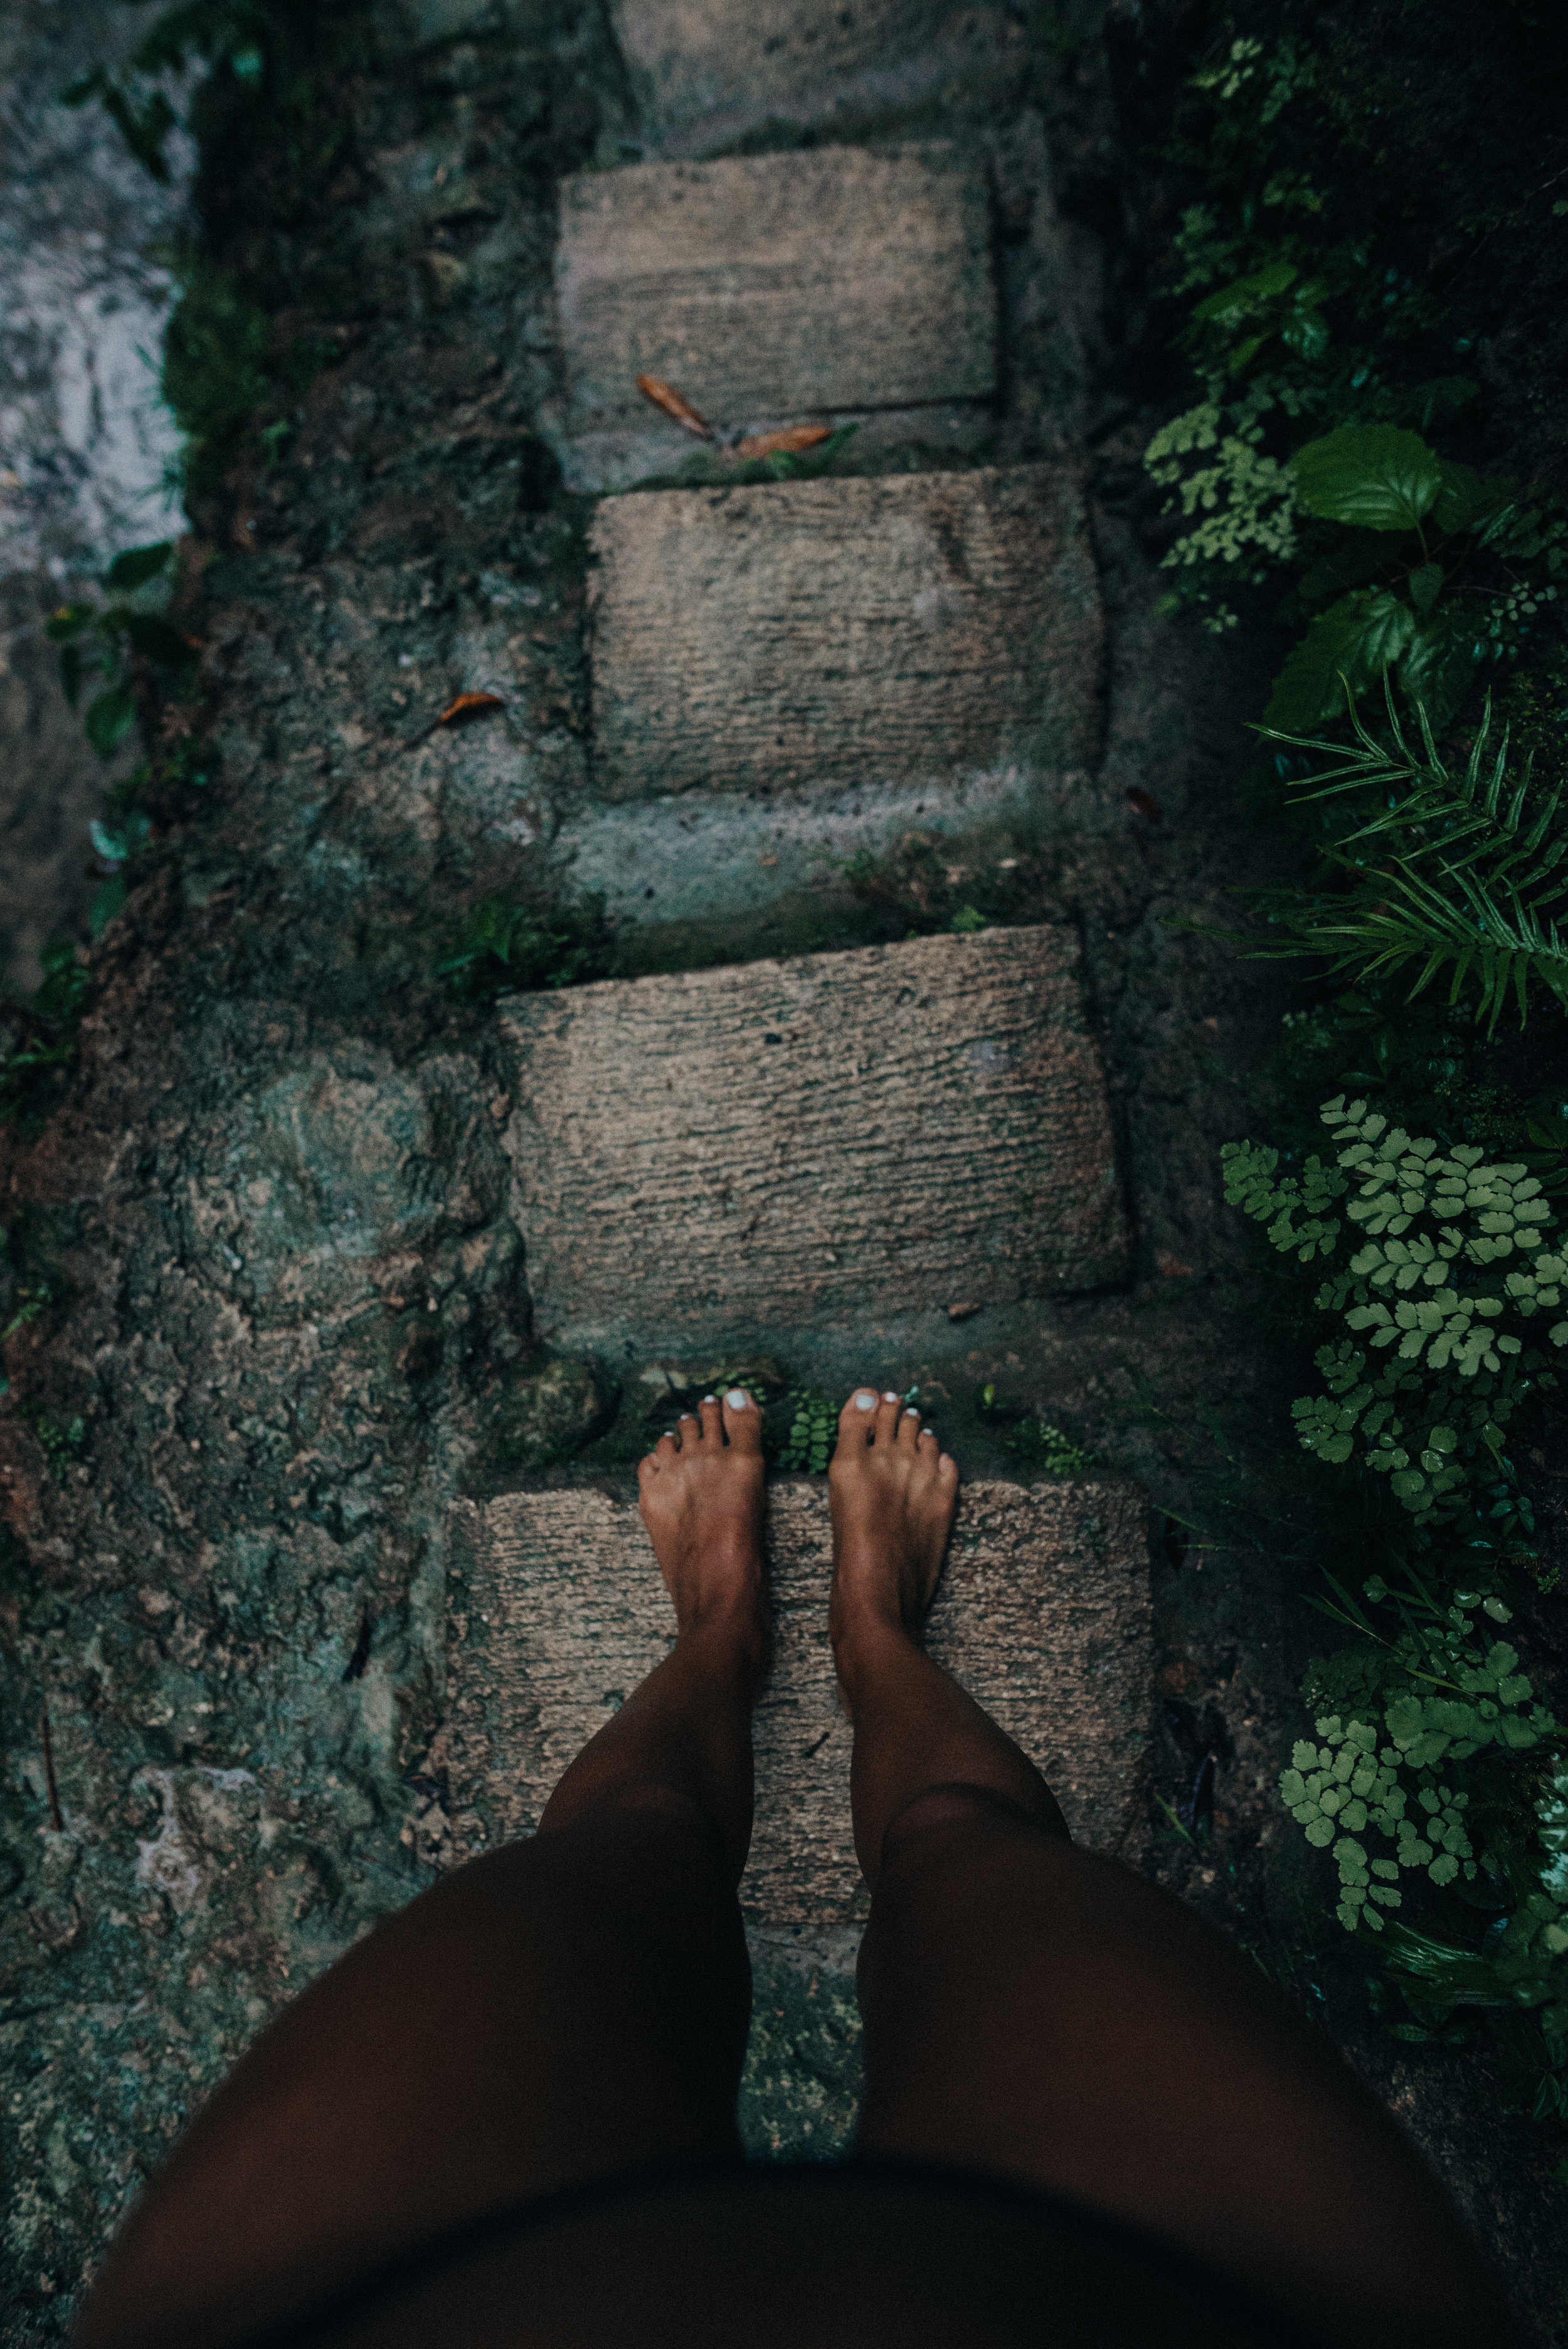 Lush greens and slippery steps